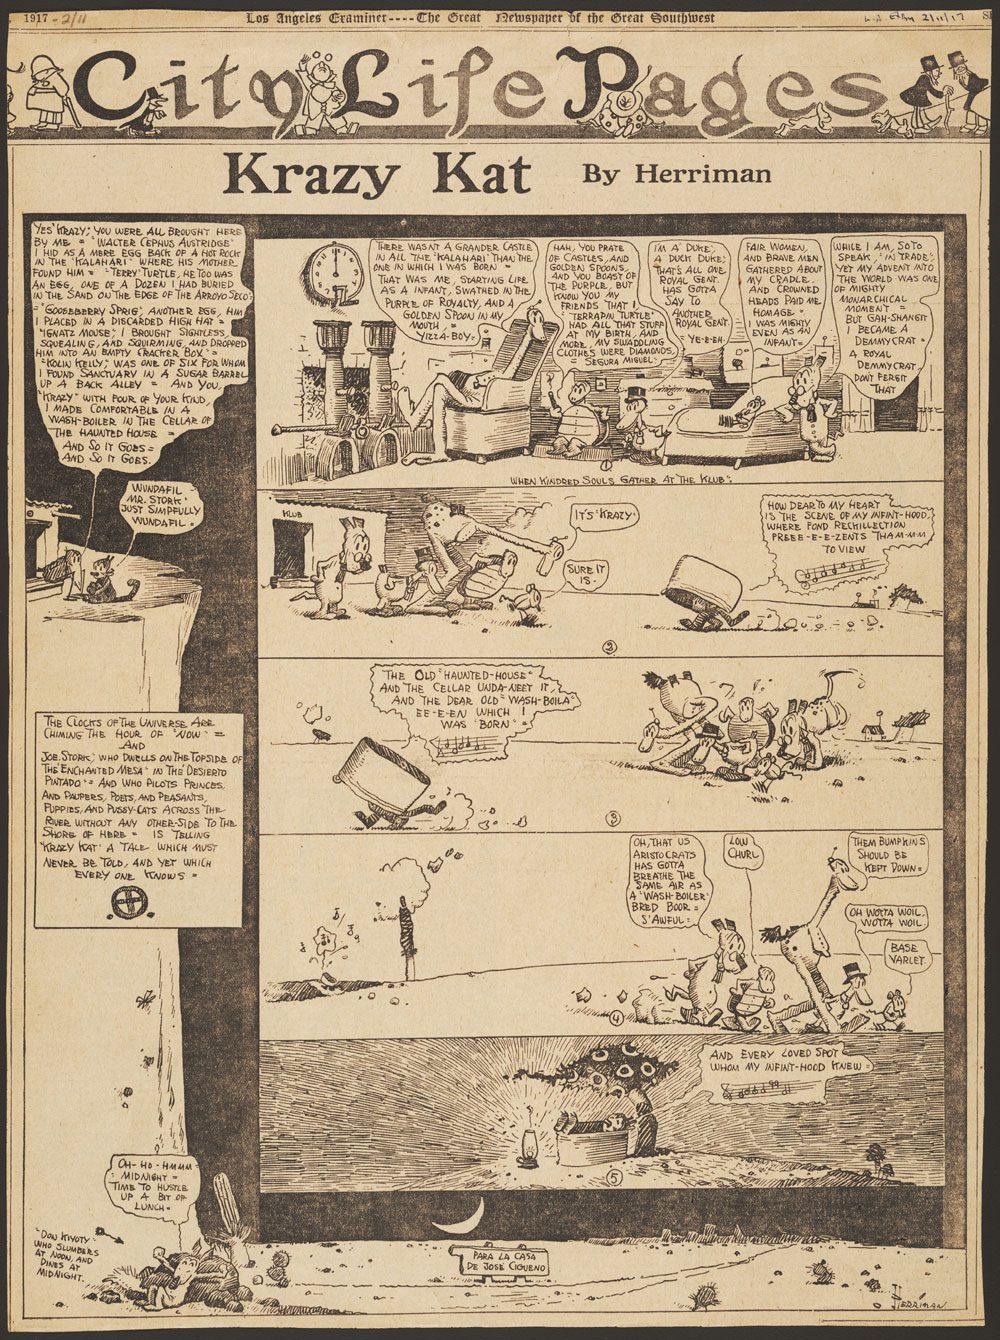 Everyone from Pablo Picasso to H. L. Mencken loved Krazy Kat.